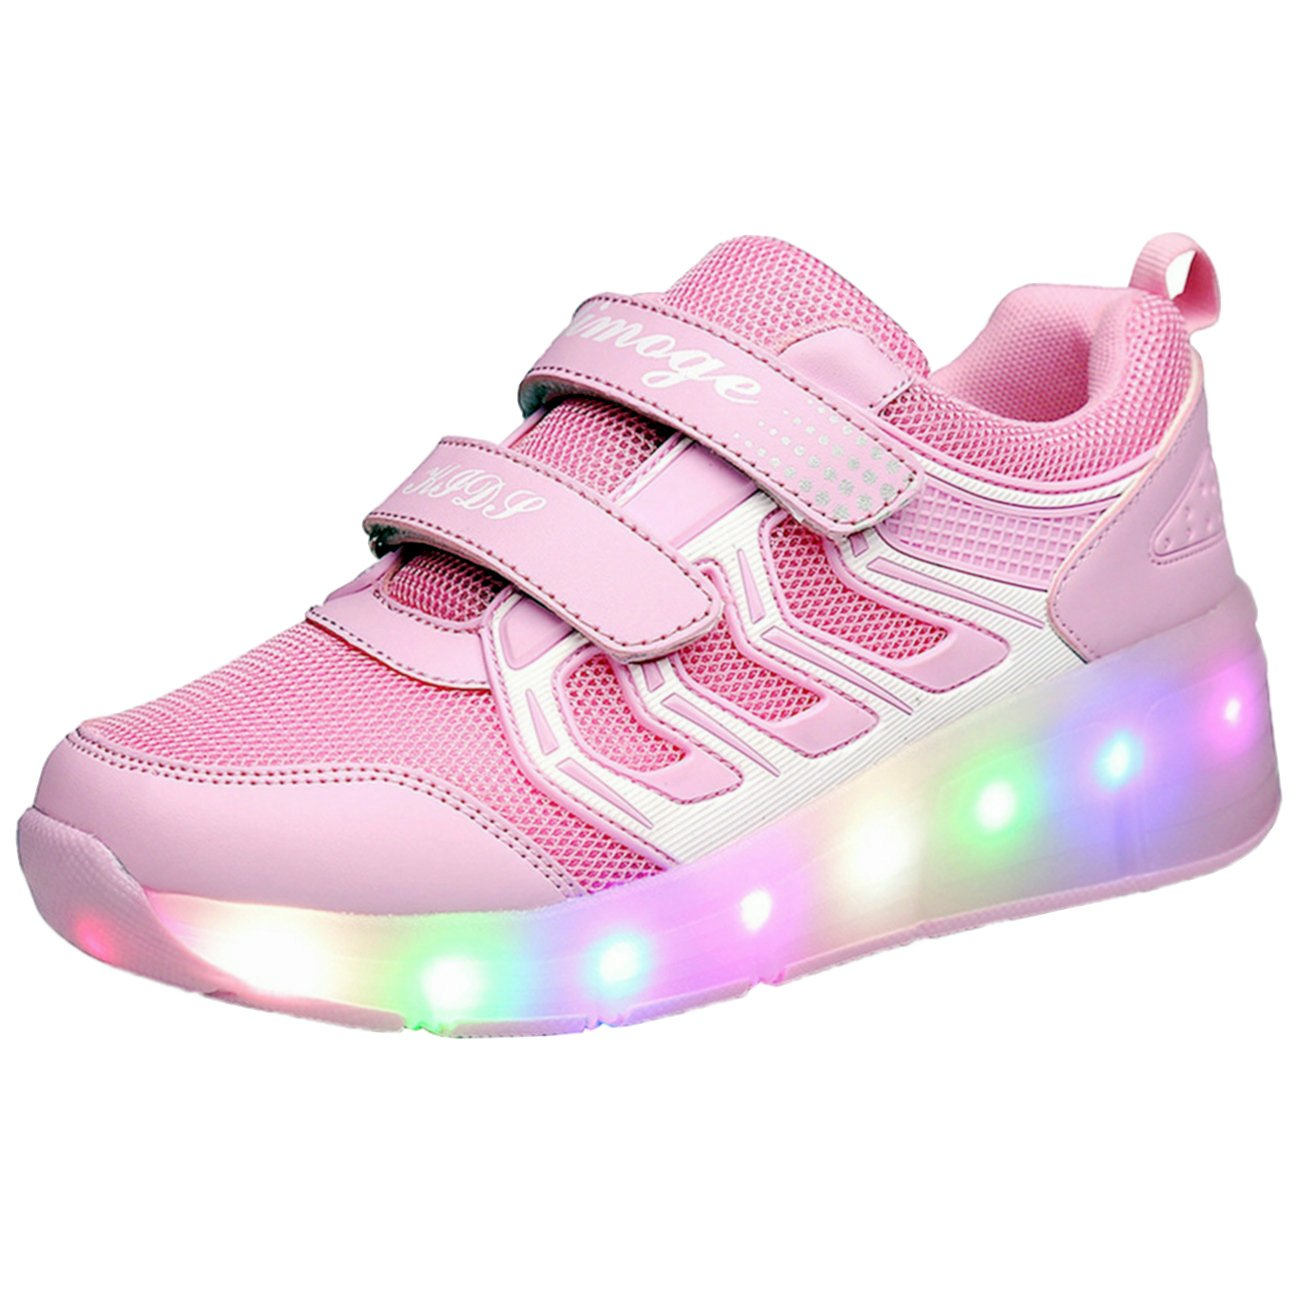 Chic Sources Girls Women Skate Sneaker Flash on Wheels Roller Shoes